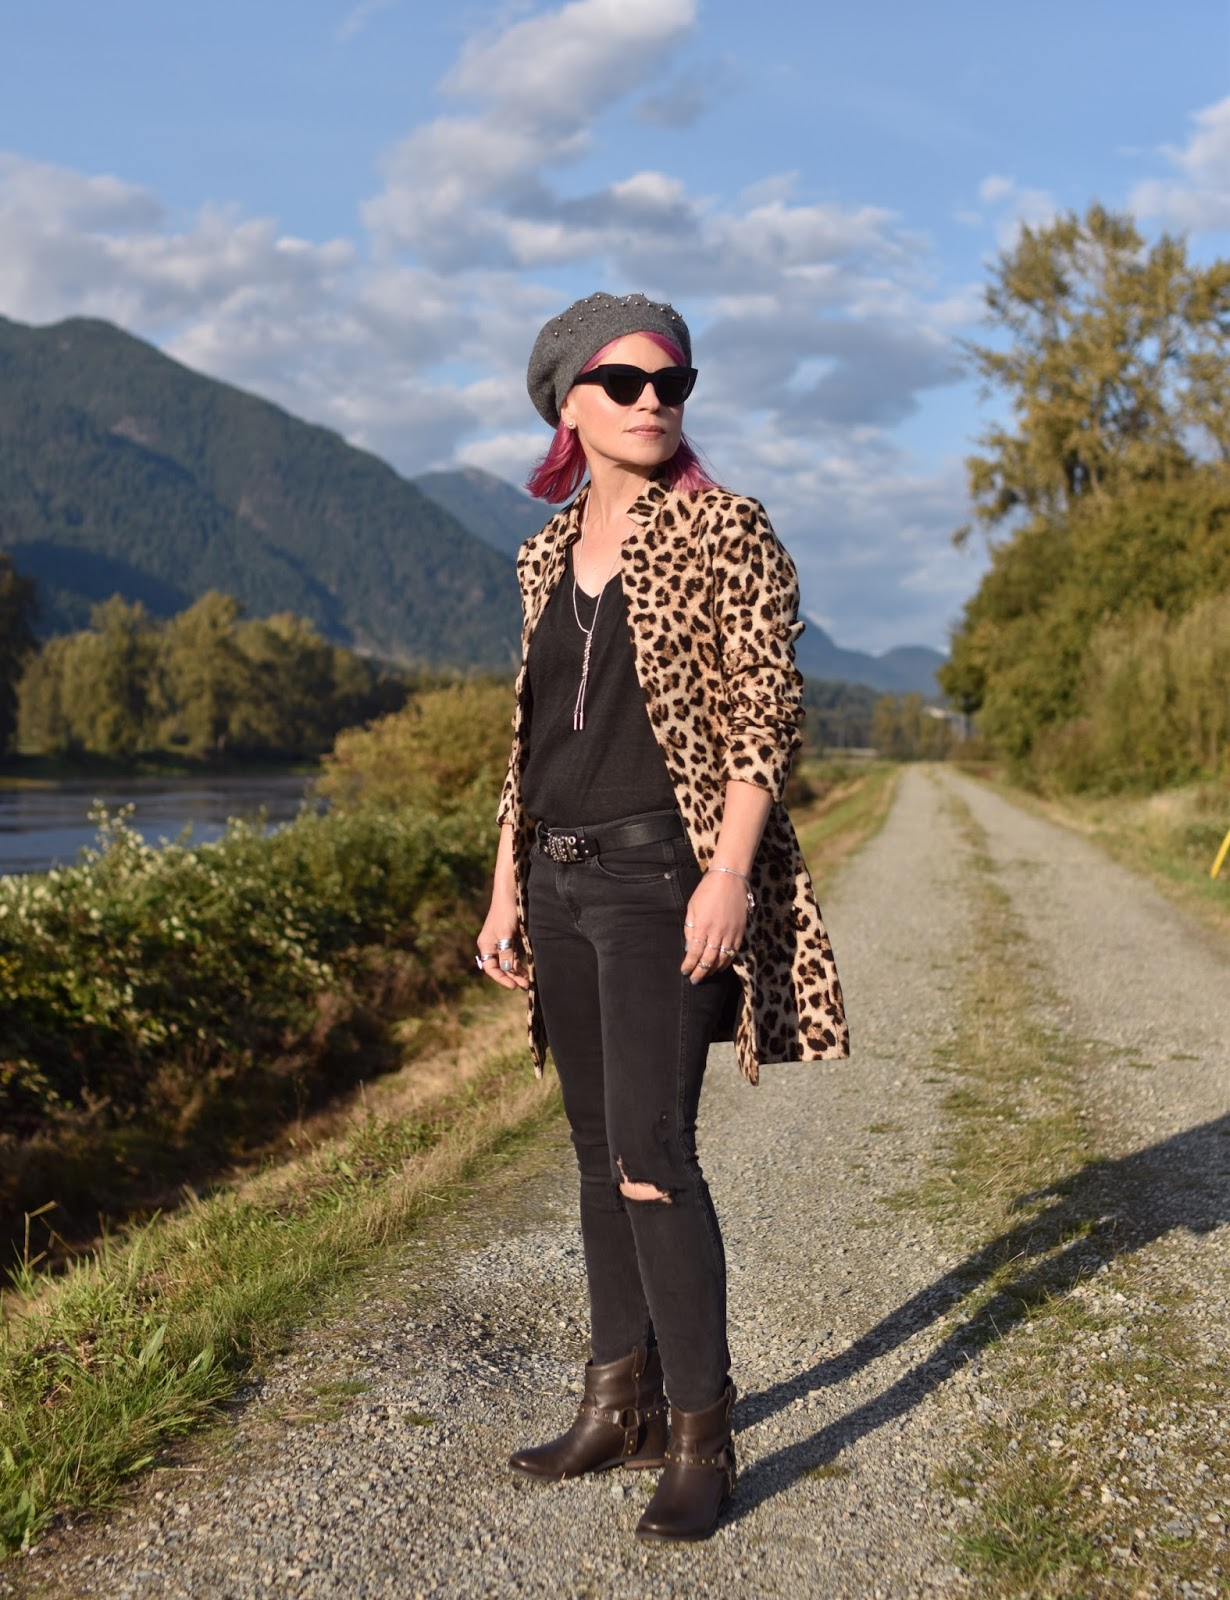 Monika Faulkner outfit inspiration - distressed black skinny jeans, leopard-patterned coat, hidden-wedge booties, beaded beret